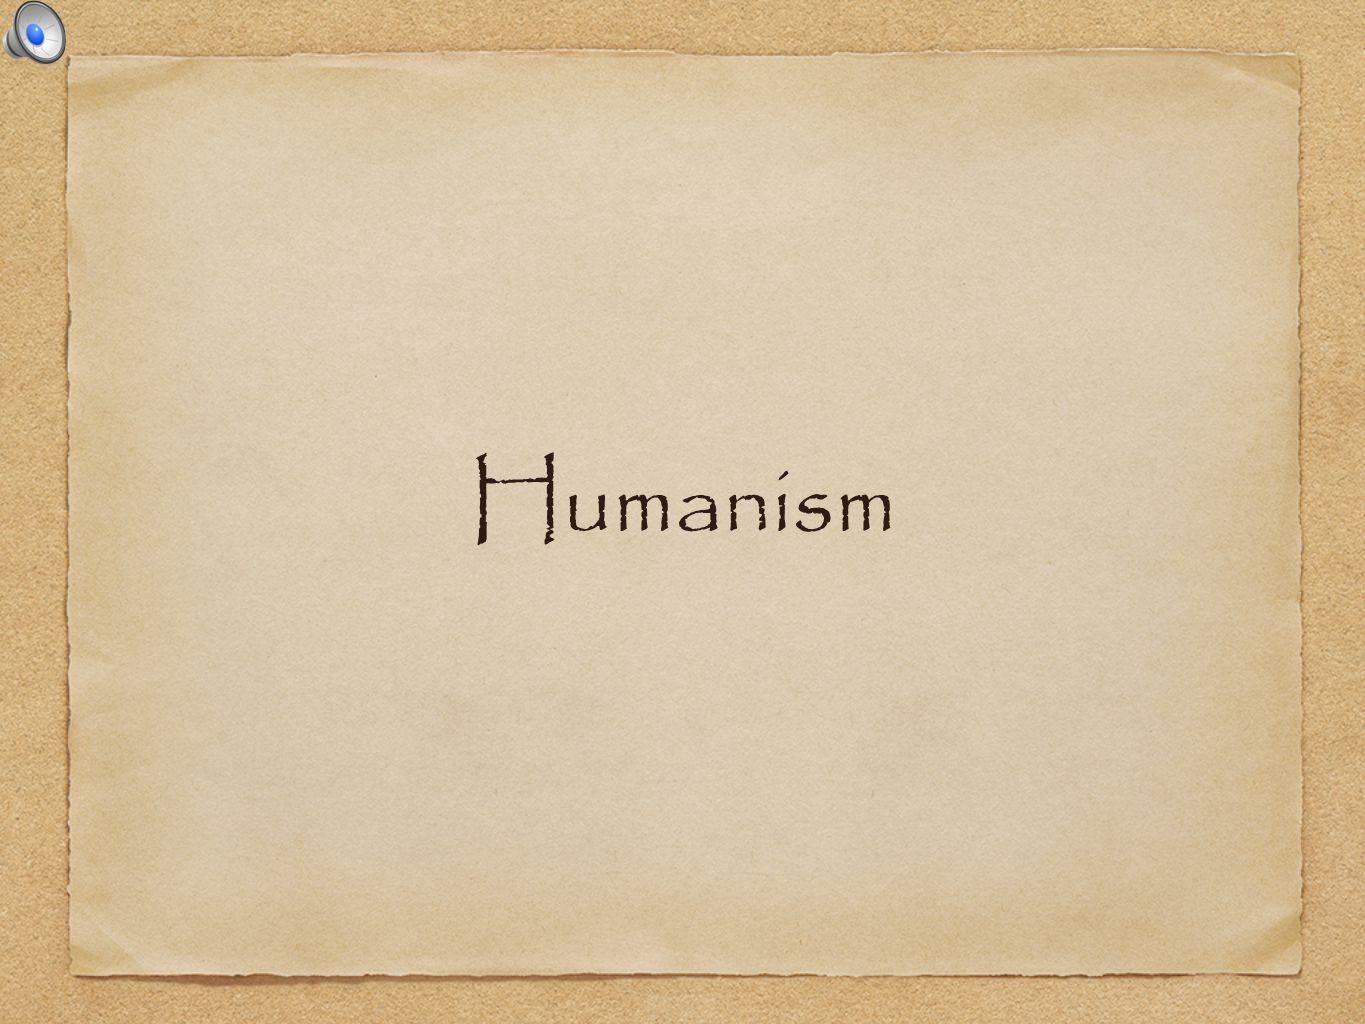 Whats the big idea(s).What is Humanism. What was its influence and significance.